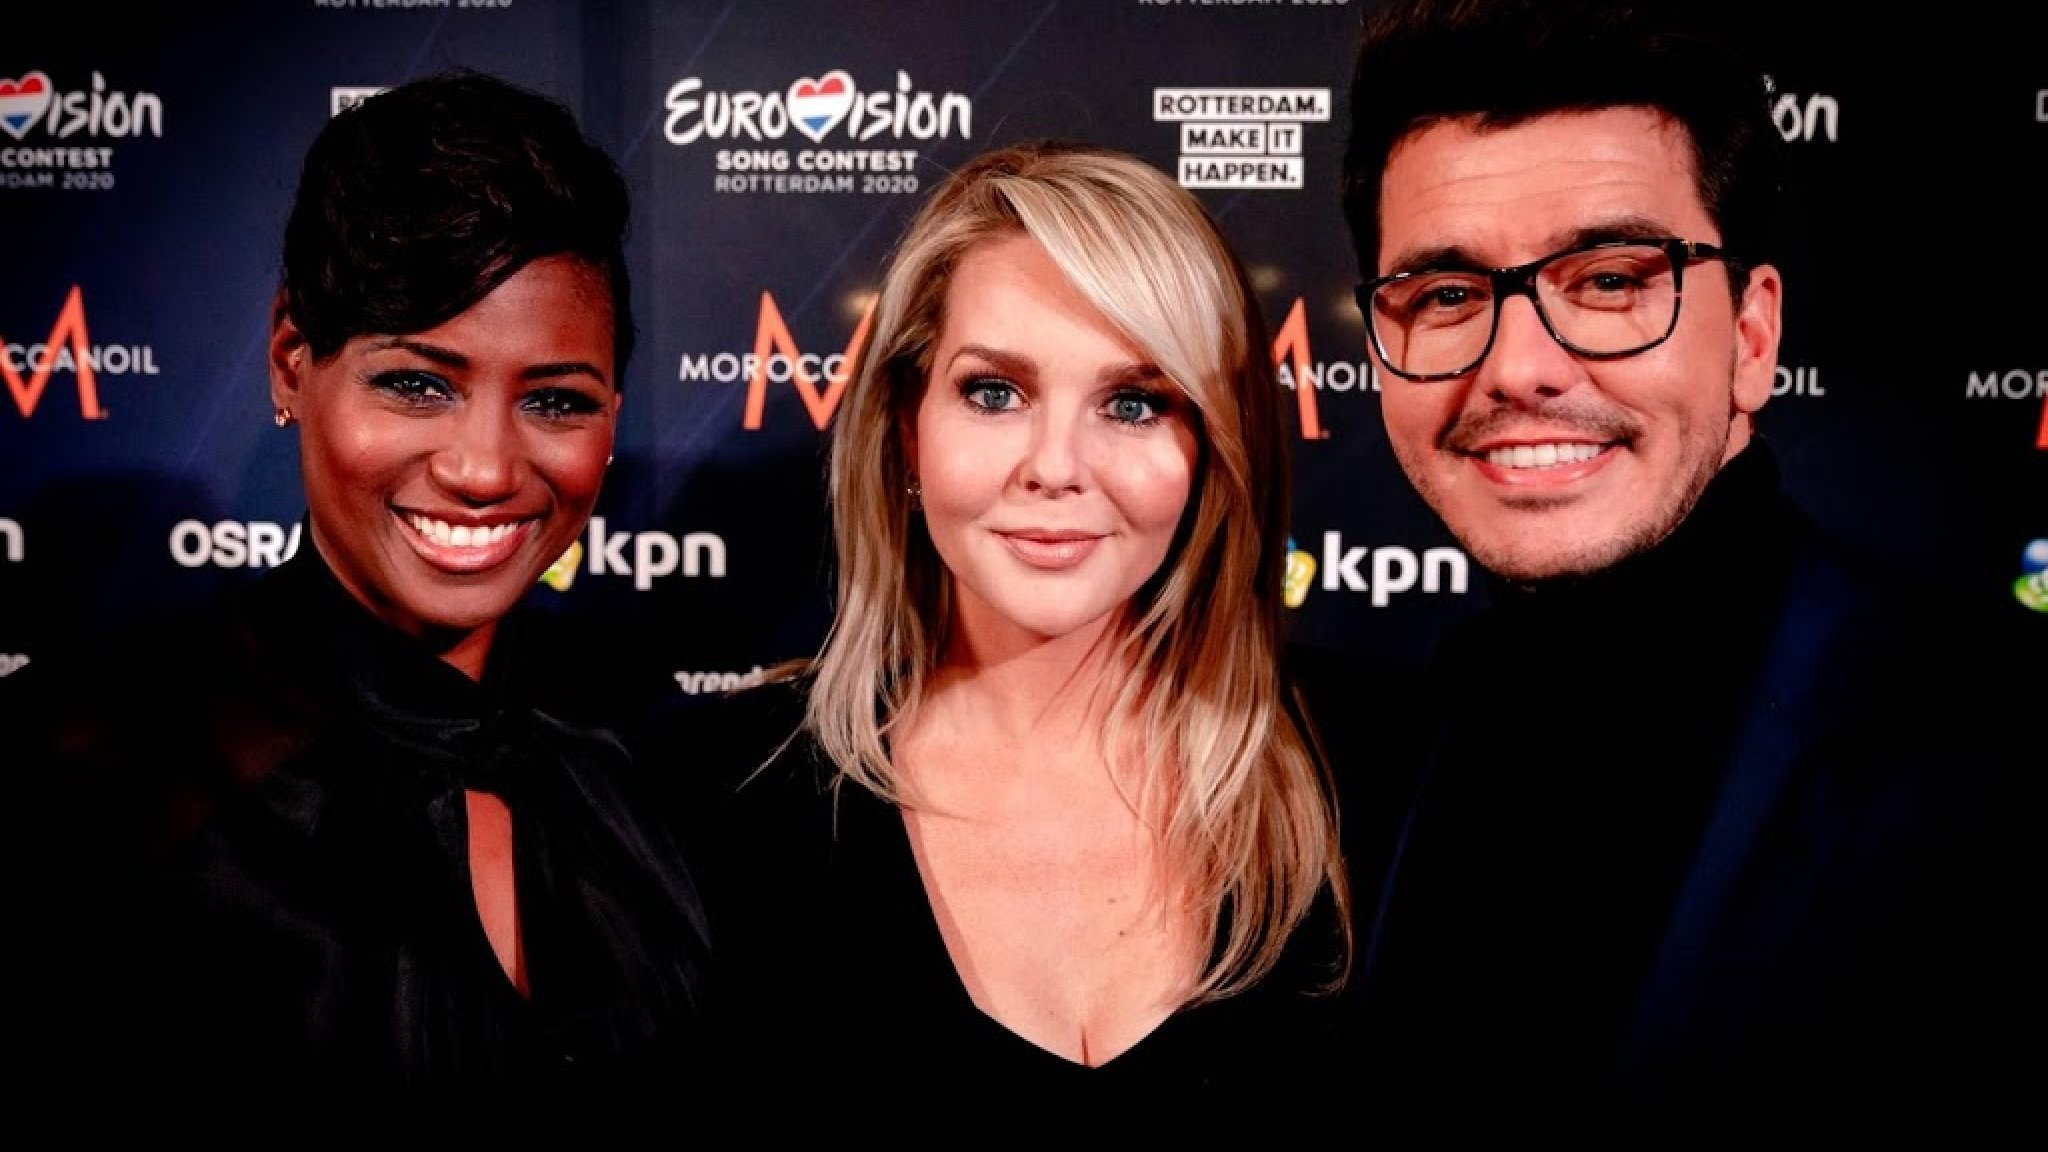 Eurovision 2021: Edsilia Rombley, Jan Smit and Chantal Janzen come back to host the competition